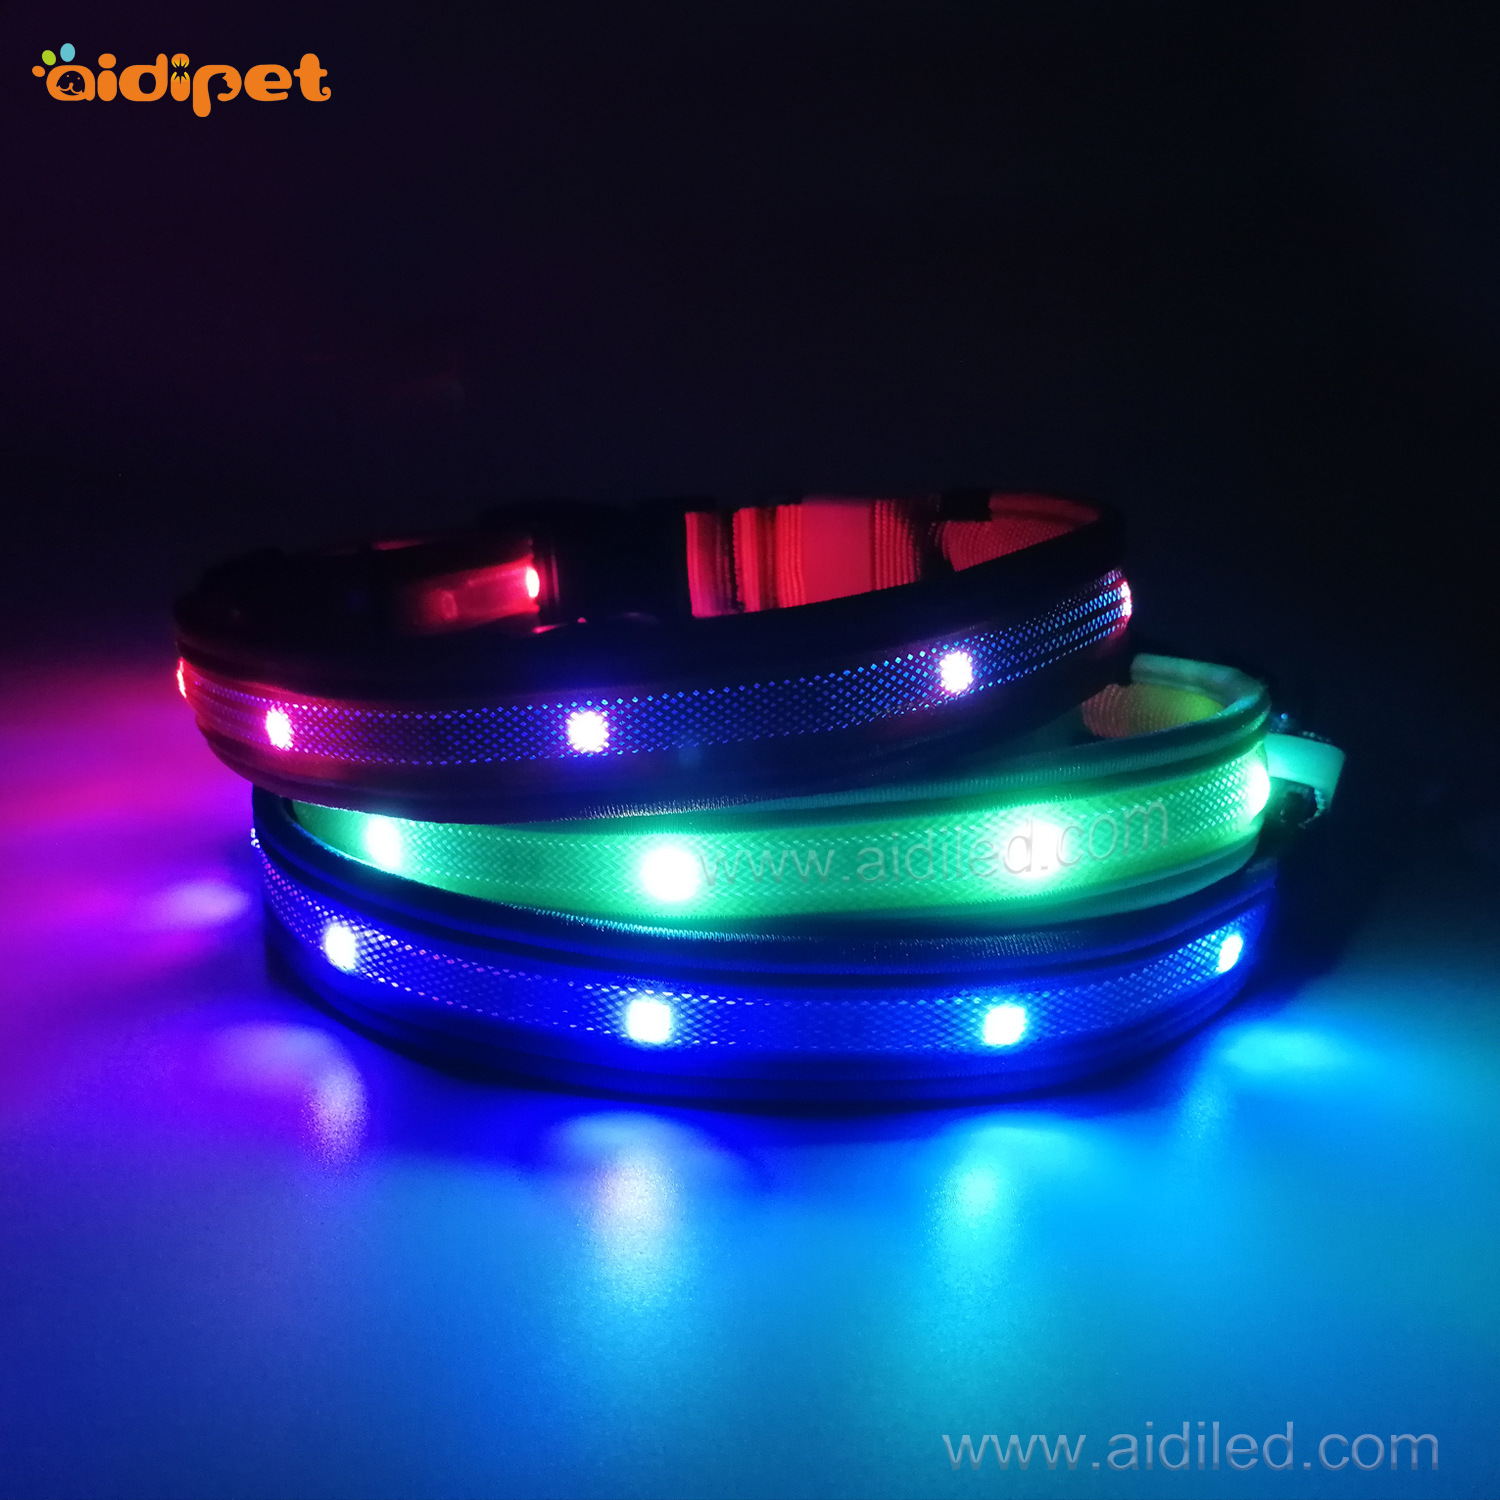 Place Of Origin Supply Of Goods LED Pet Collar Grb Horse Race Lamp Colorful Dog Neck Ring USB Charging Neck Ring Luminous Collar